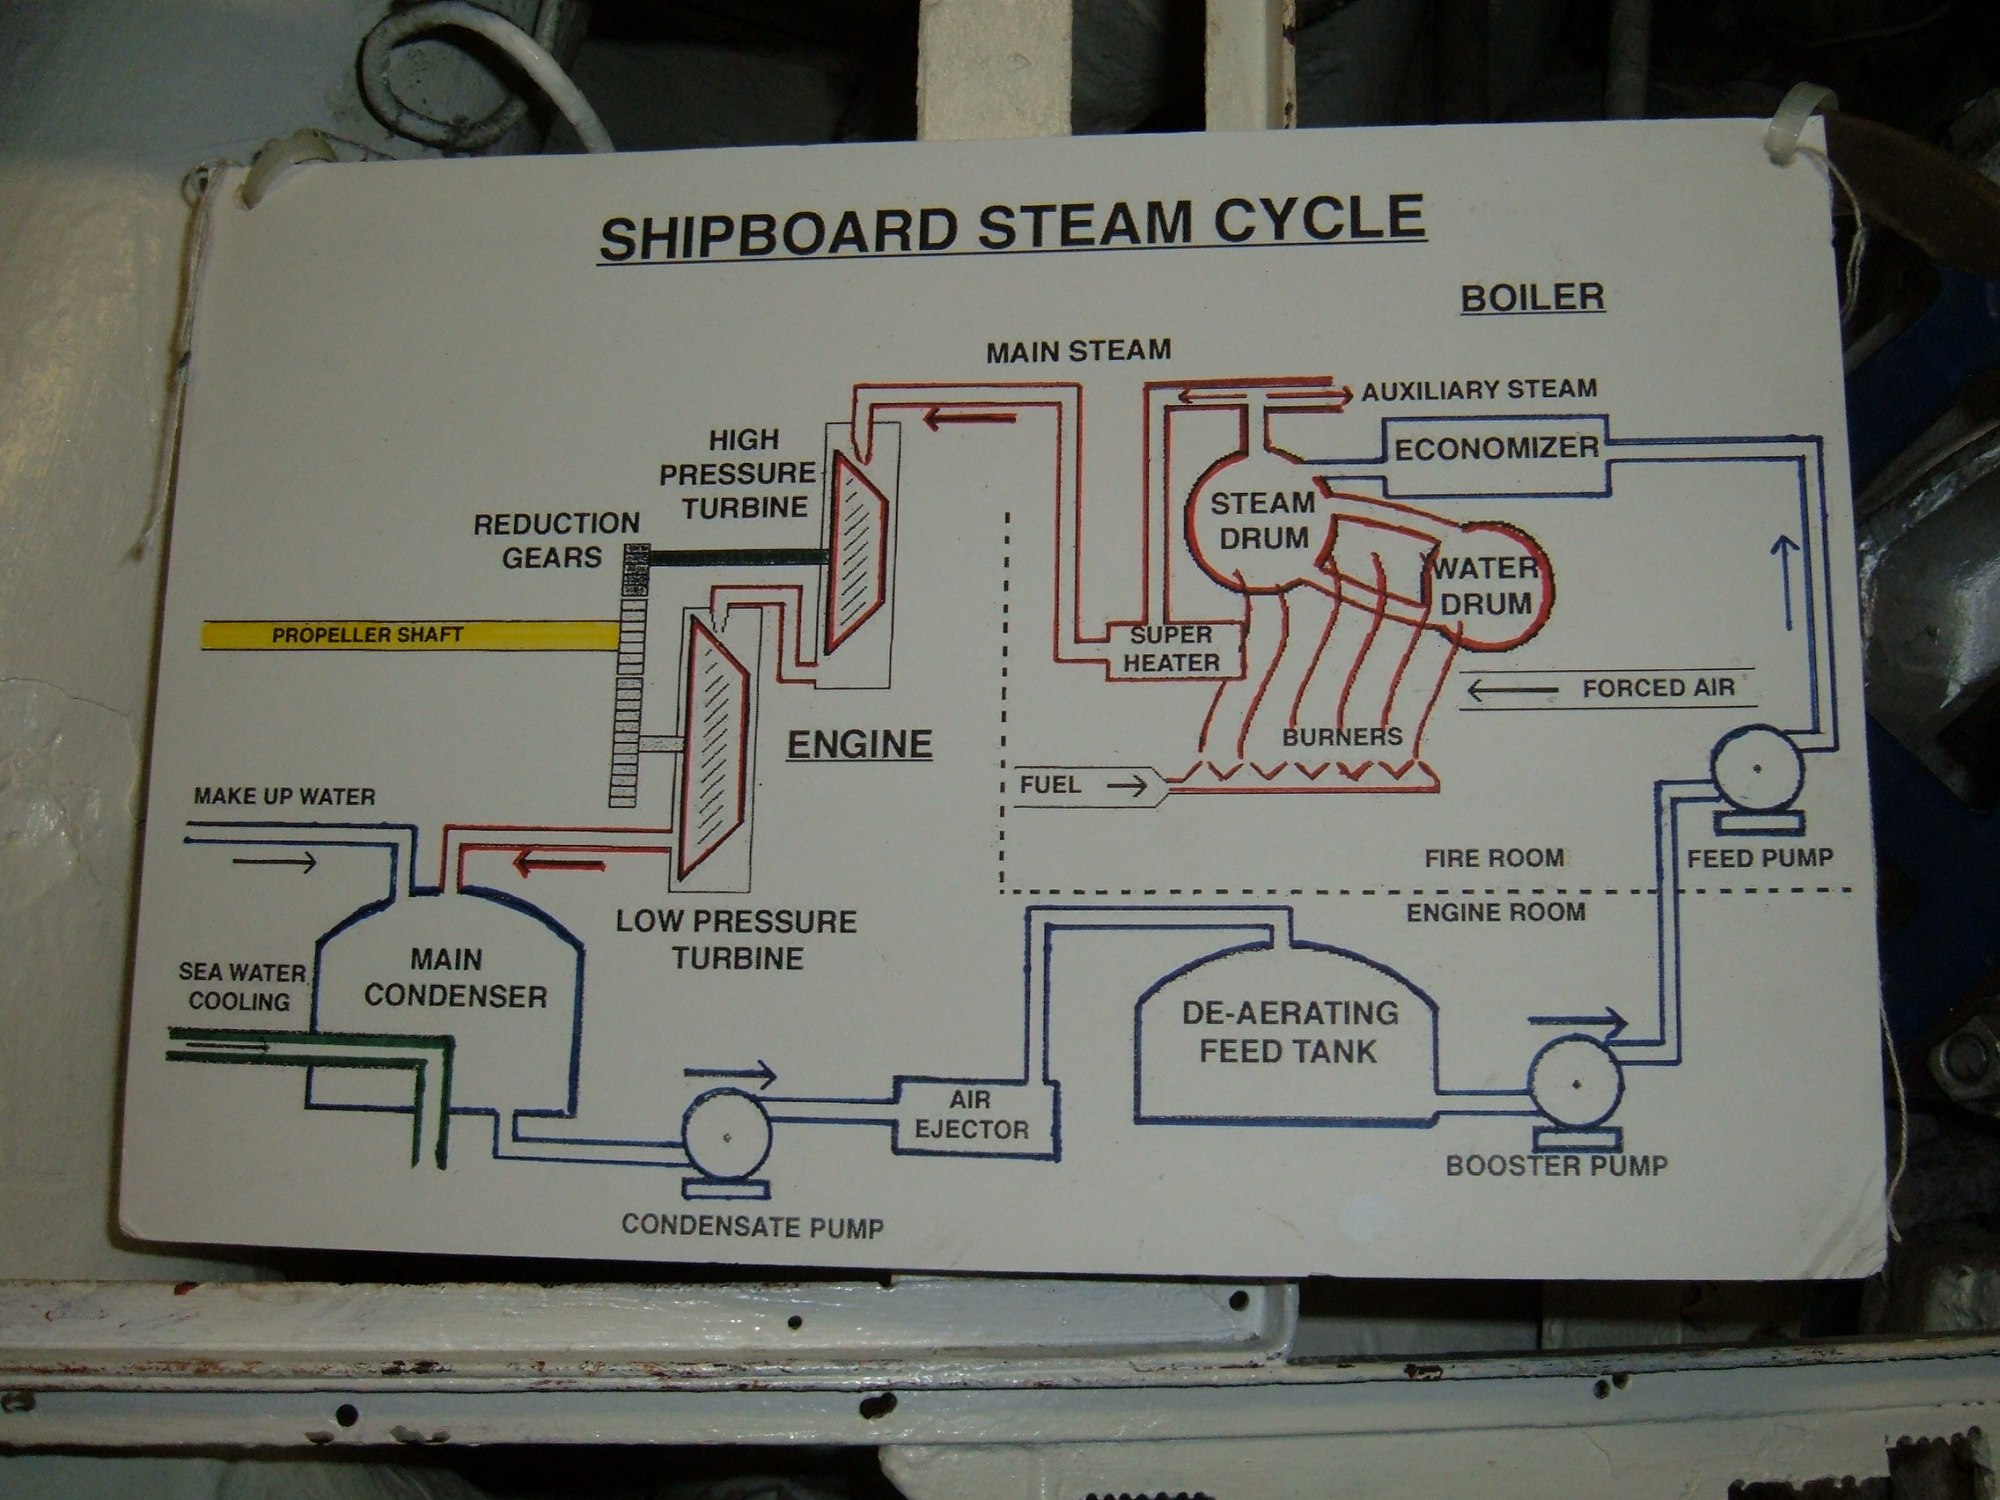 hight resolution of file uss hornet cv 12 steam cycle diagram jpg